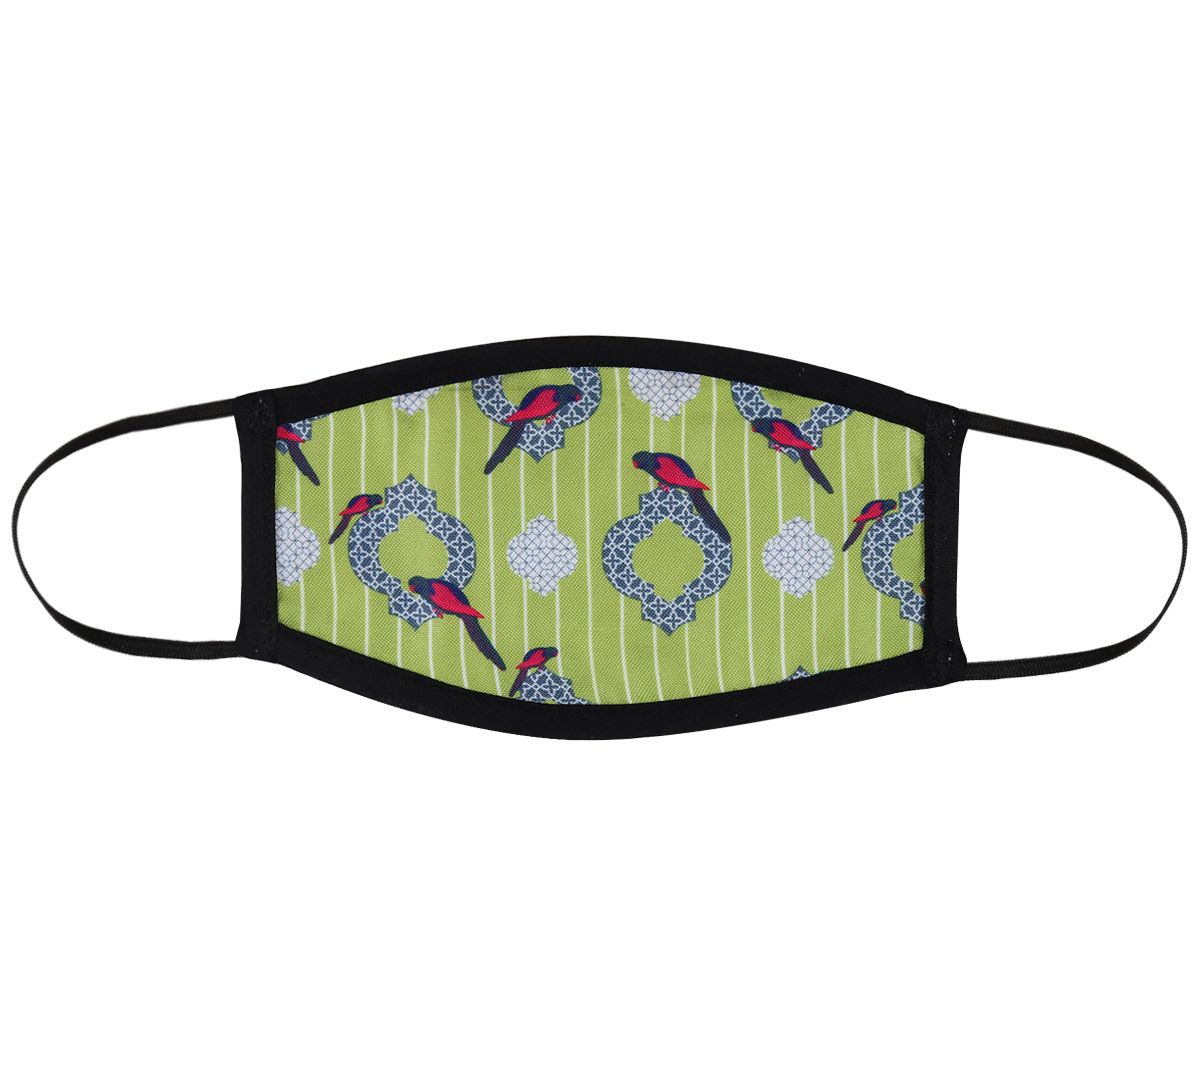 India Circus Peeking Parrots Lime Protective Face Masks for Kids